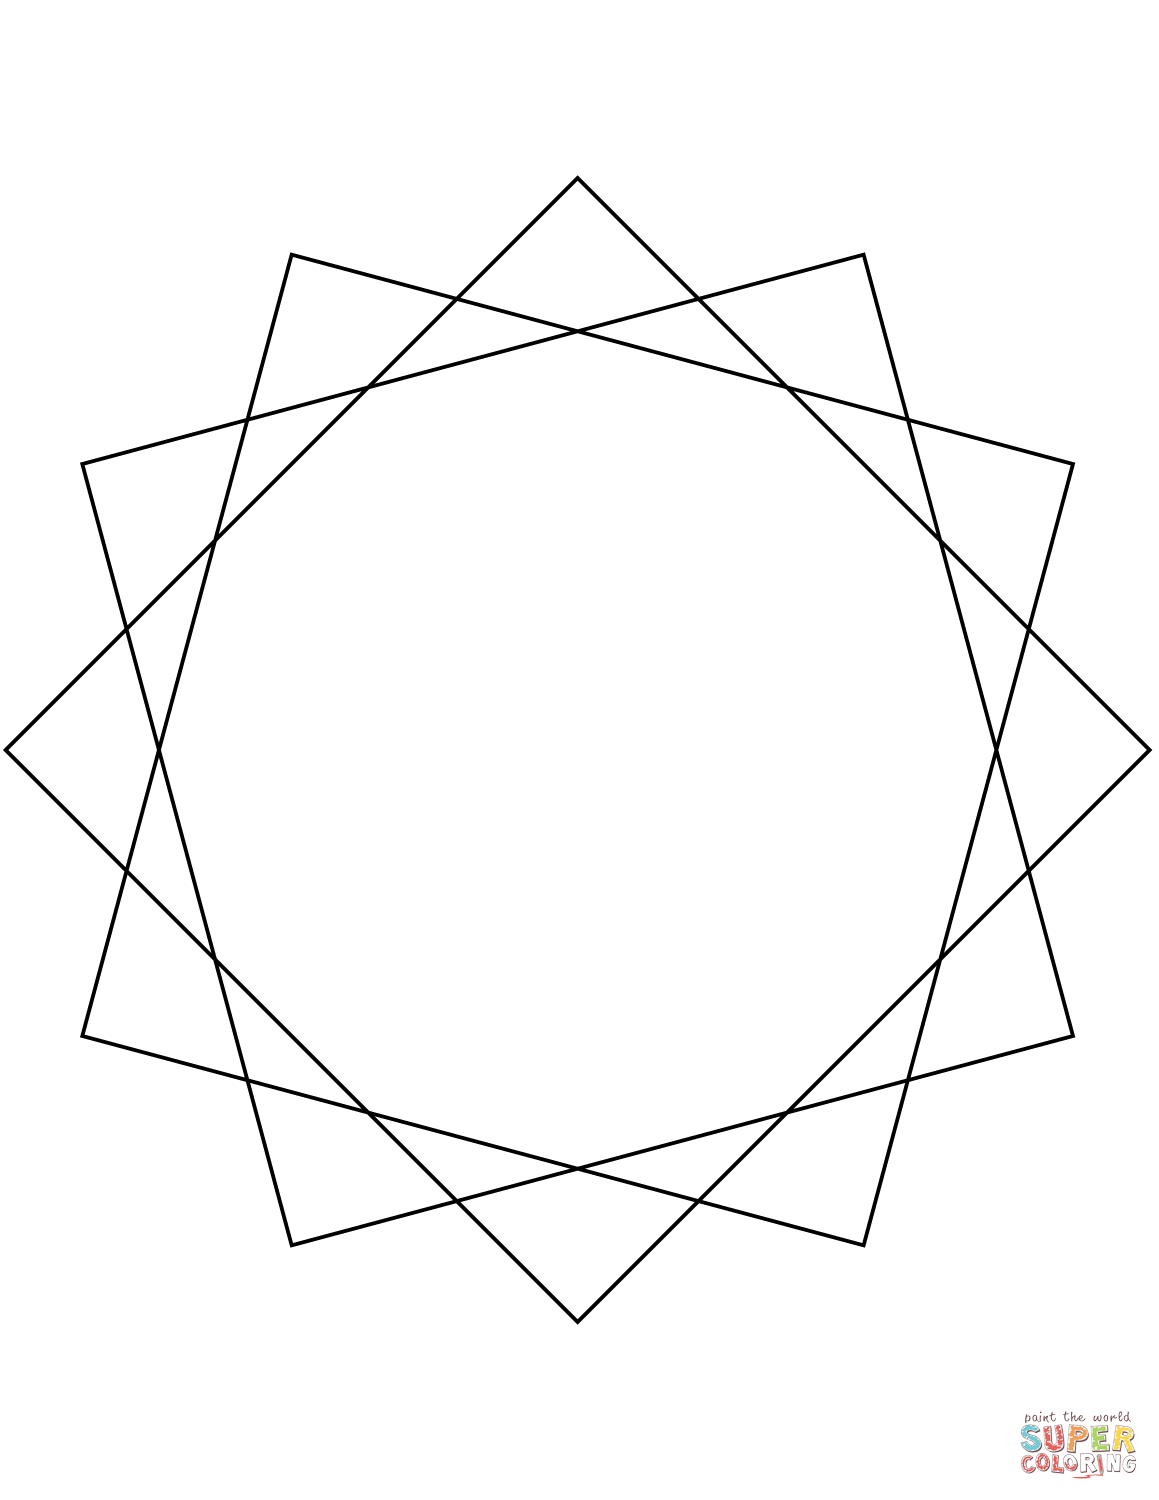 5 Point Star Drawing At Getdrawings